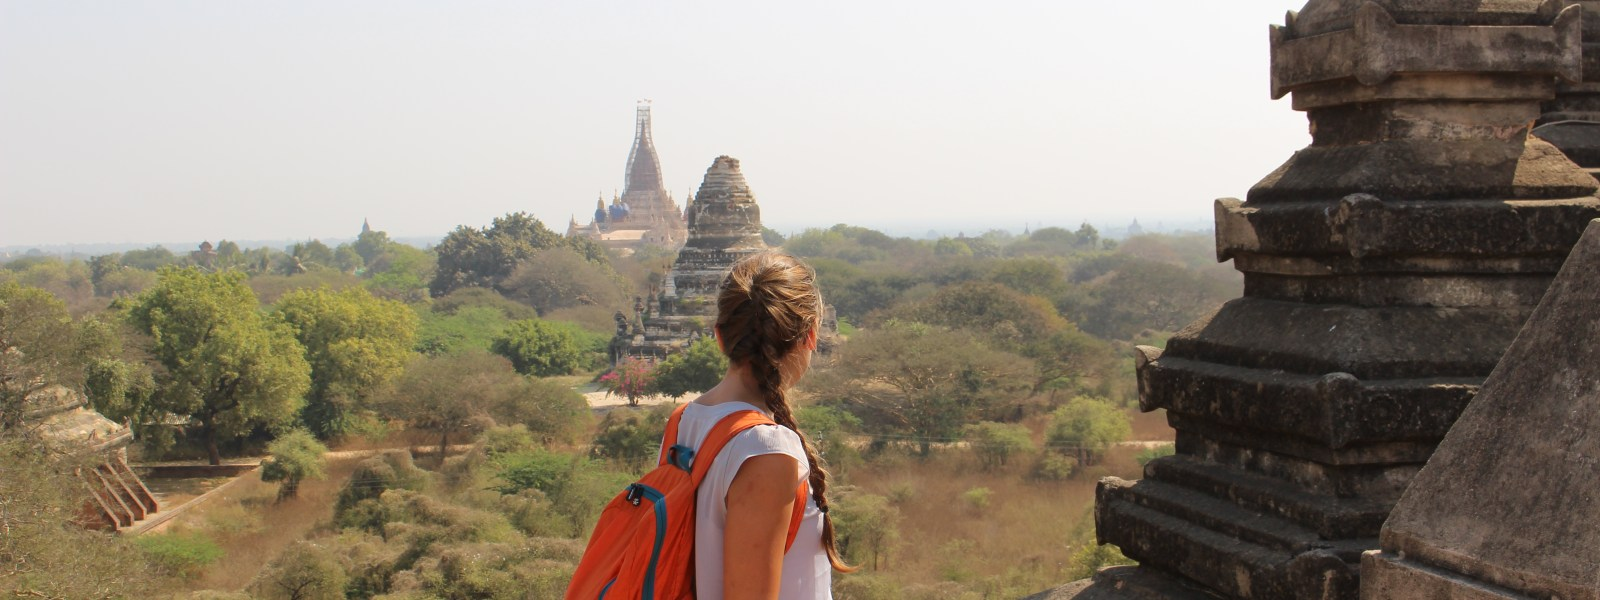 My wishlist for a second trip to Myanmar